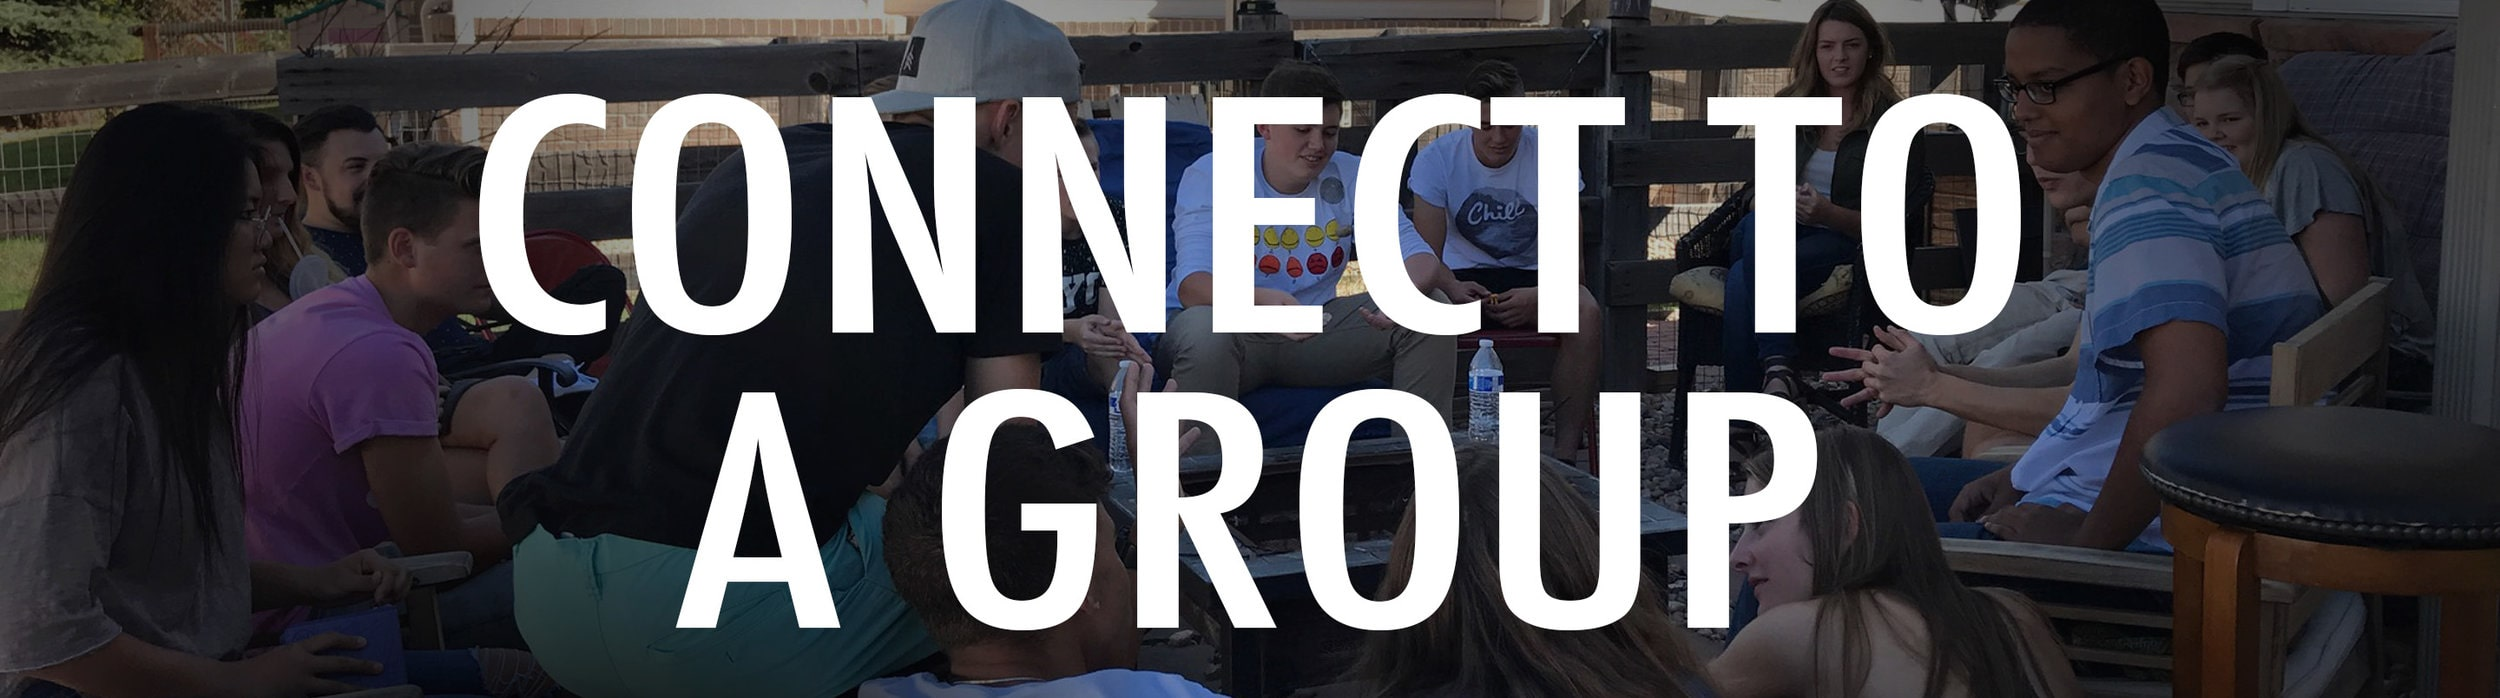 connect to a group.jpeg